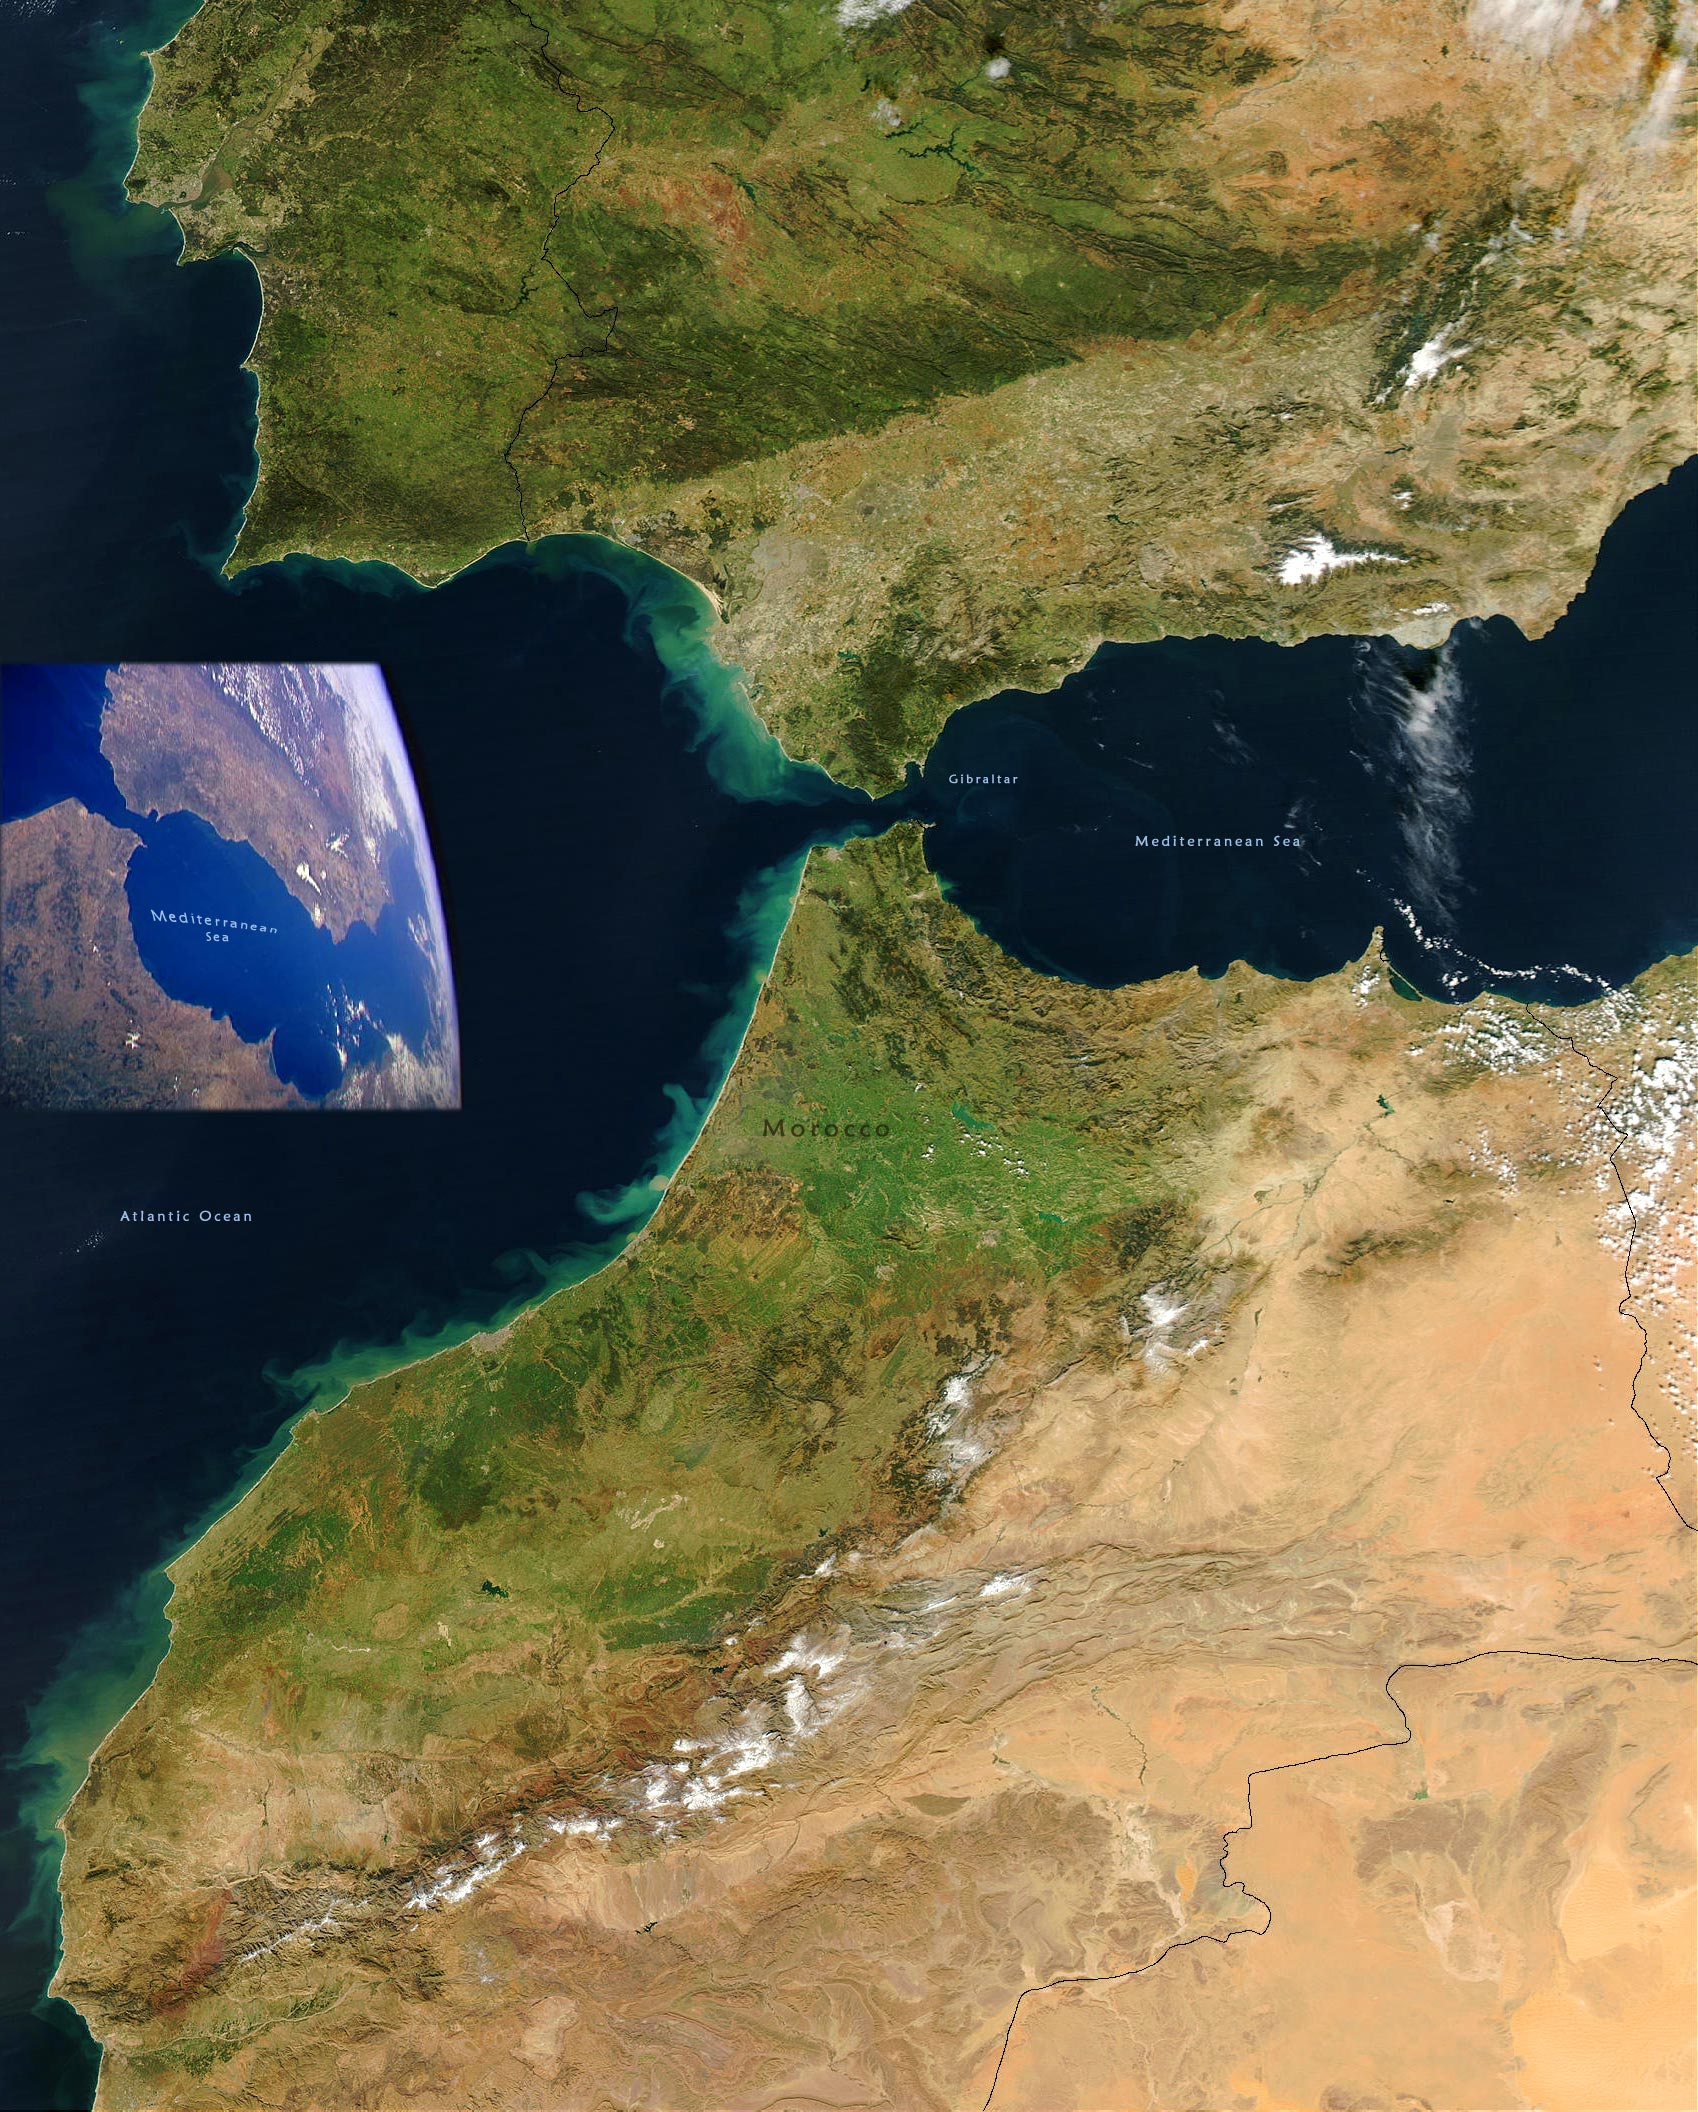 Map Of Spain Gibraltar And Morocco.Strait Of Gibraltar Spain Morocco Image